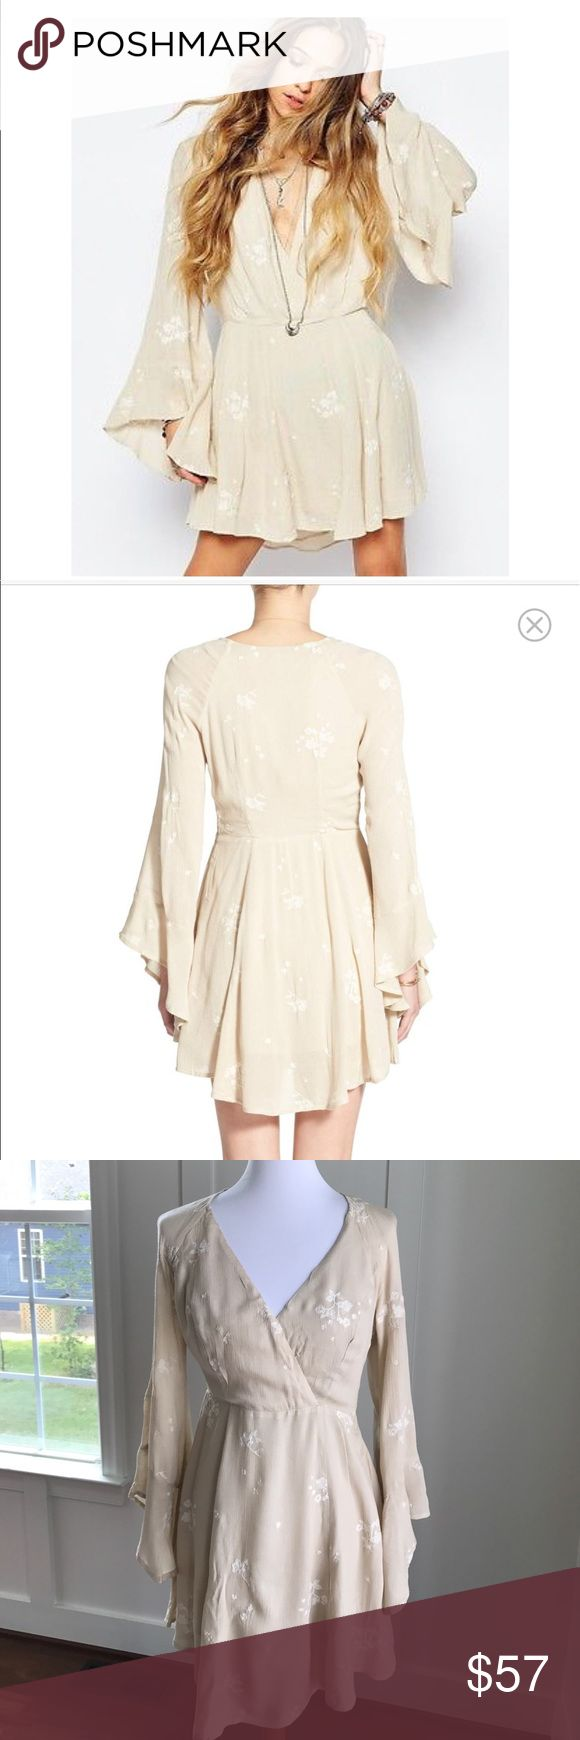 Free People Jasmine Embroidered Wrap Front Dress 4 Sweet floral embroidery punctuates the soft silhouette of a romantic wrap-front dress featuring flouncy angel sleeves and a gently flowing skirt. Like new condition. Free People Dresses